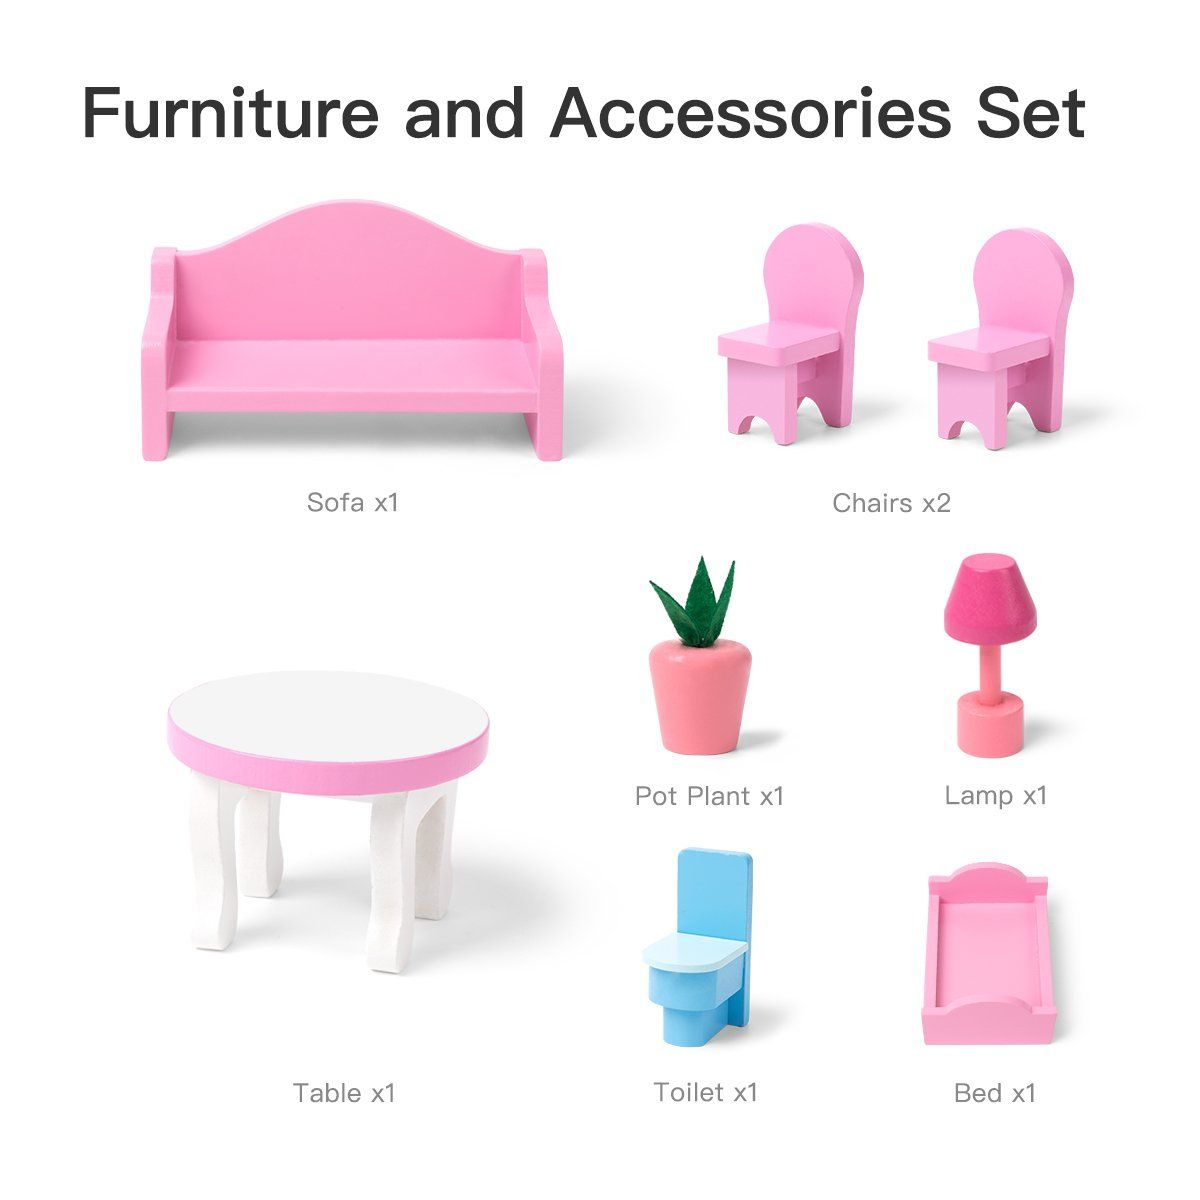 Wooden Dollhouse with Furniture, Doll House Playset for Kids